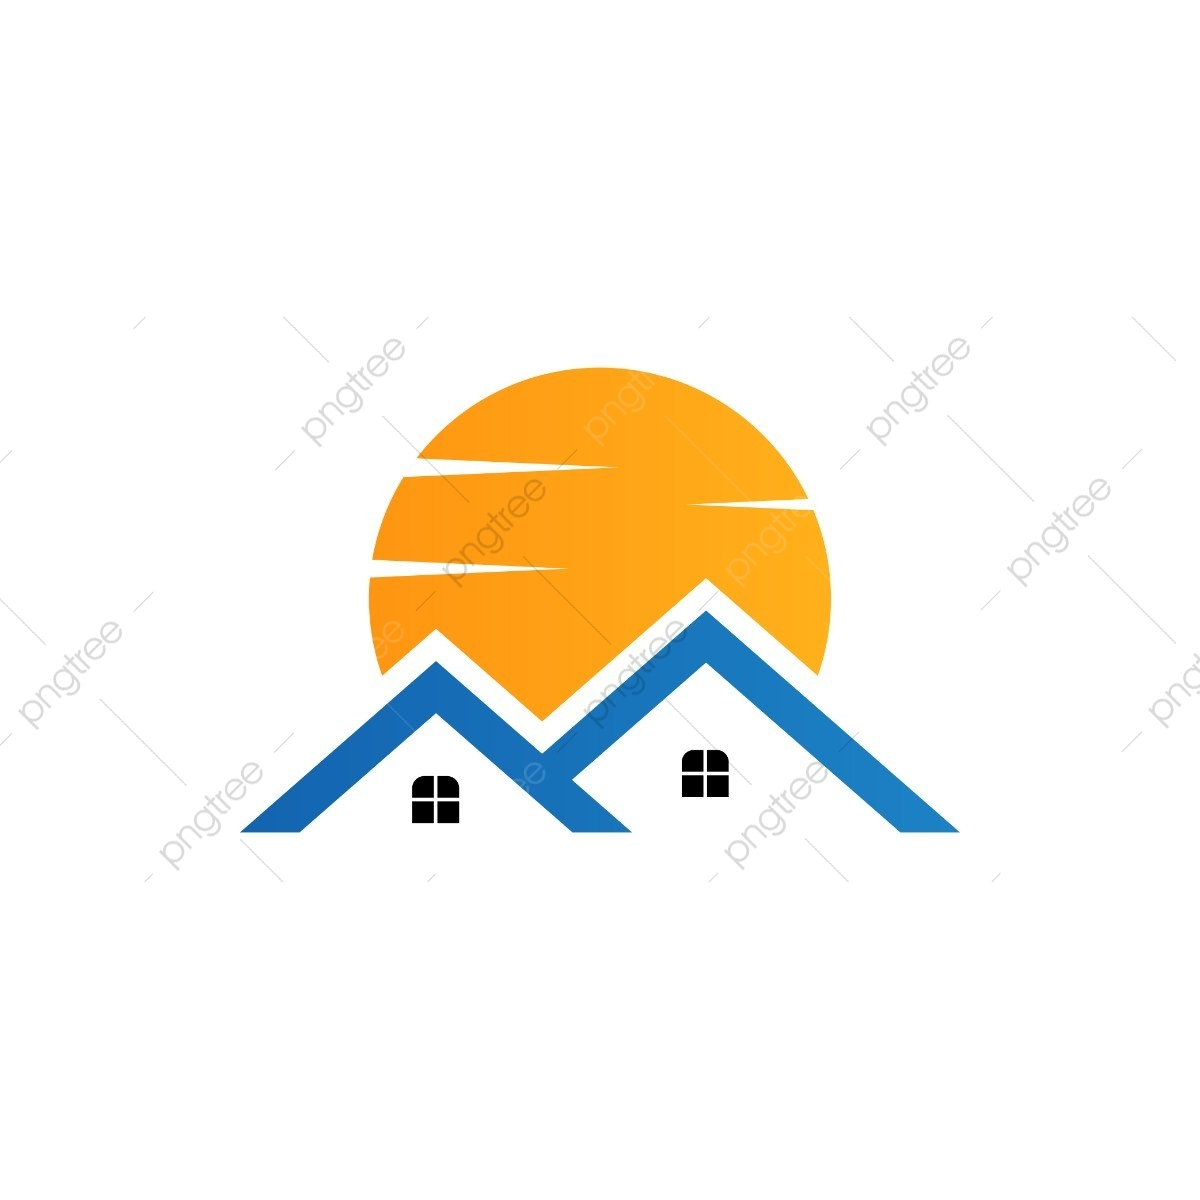 Sunny clipart real. Estate logo satisfying sunset